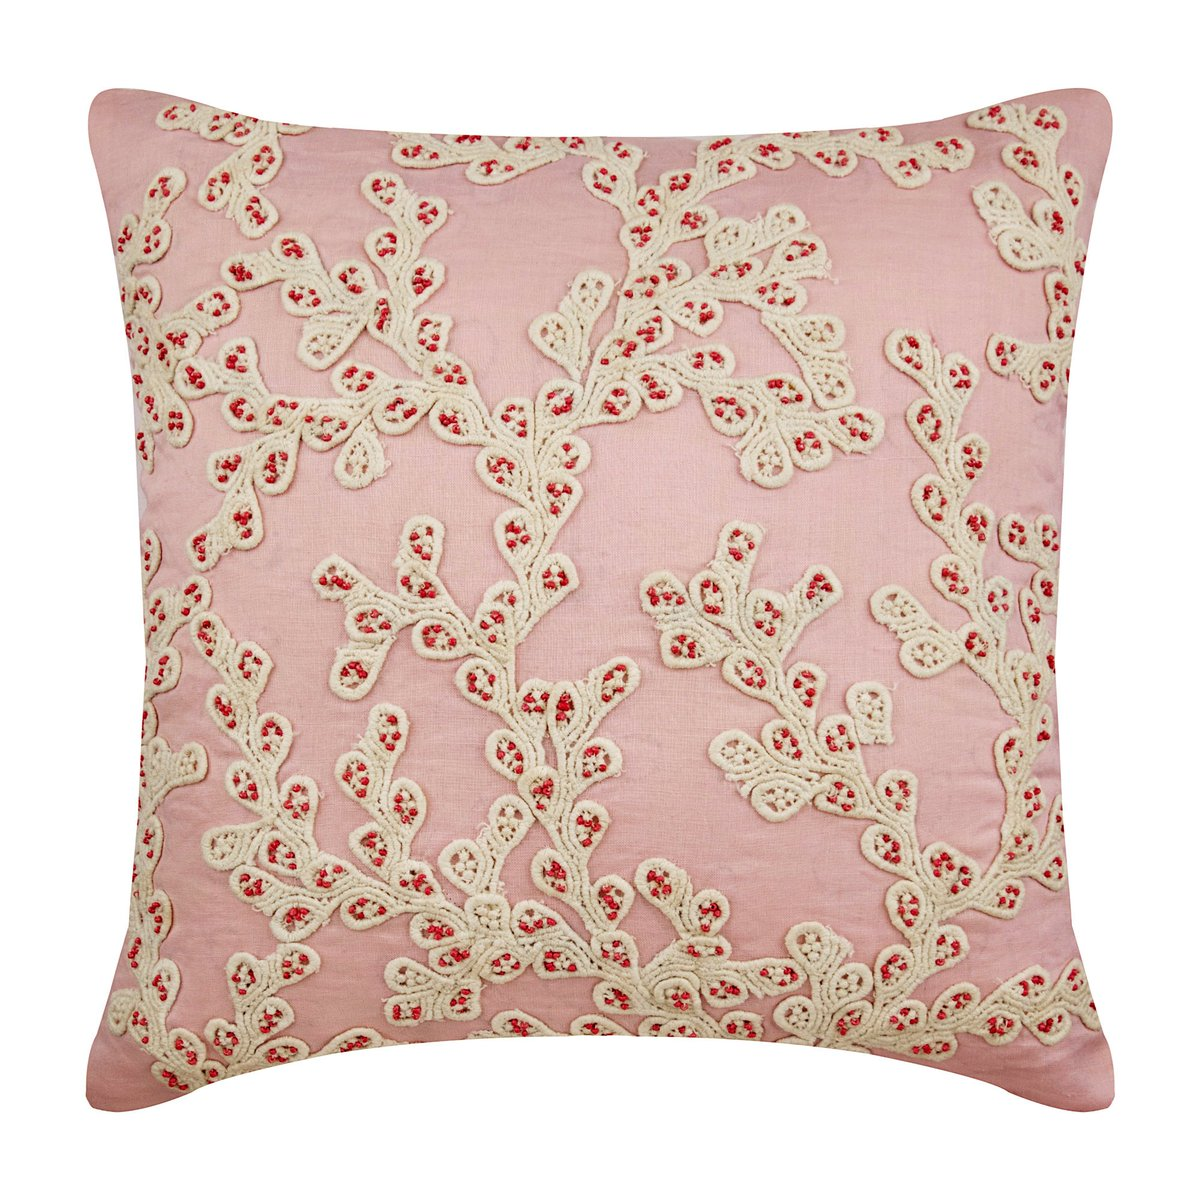 The Homecentric On Twitter Pink Pillow Covers Square Multicolor Lace Sea Creatures Ocean Beach Theme 12 X12 Cotton Linen Pillows Cover Home Decor Coral Island Https T Co C2jrczj0ia Housewares Pillow Square Bedroom Coveronly